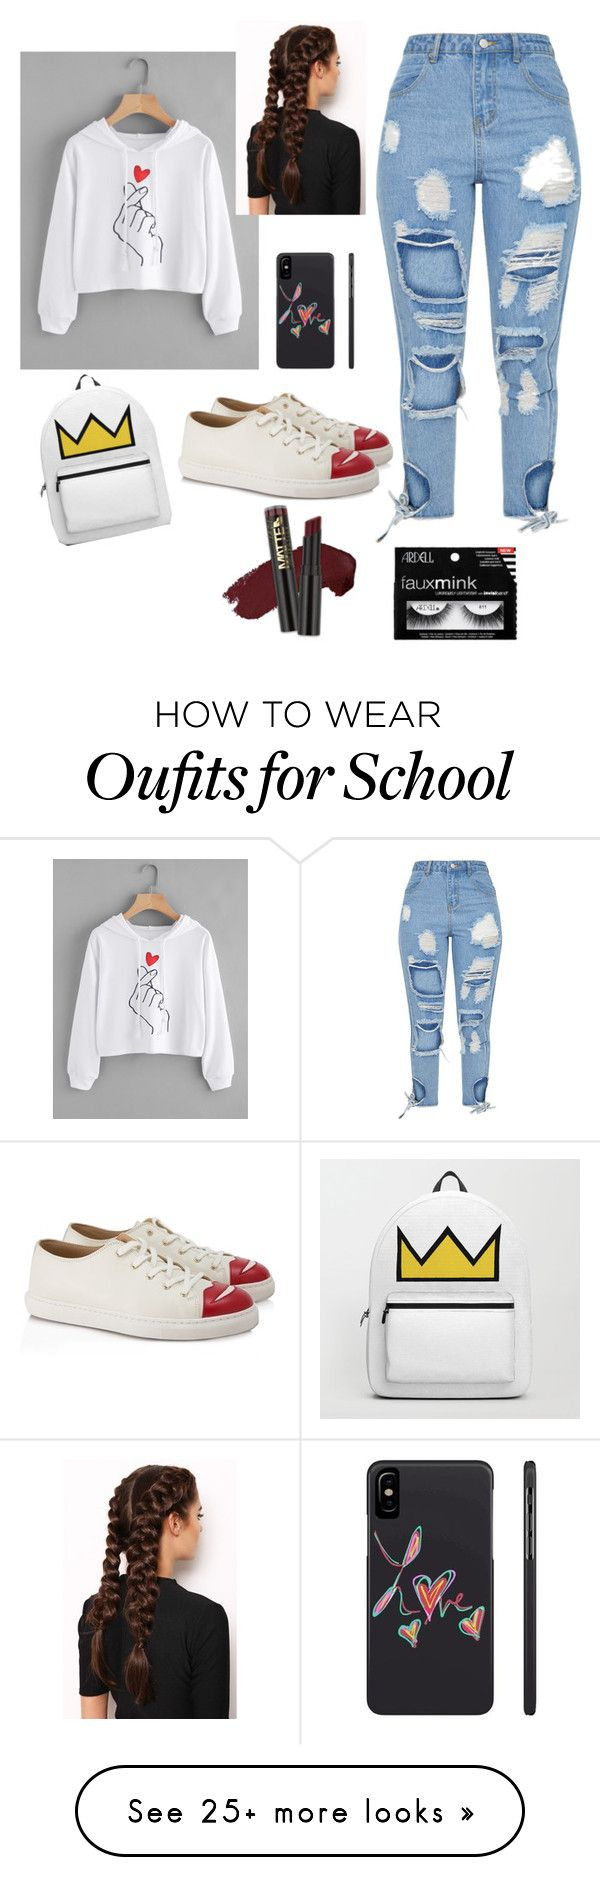 """School day flex day!!"" by cherolxcreations on Polyvore featuring Charlotte Olympia, LullaBellz and L.A. Girl"